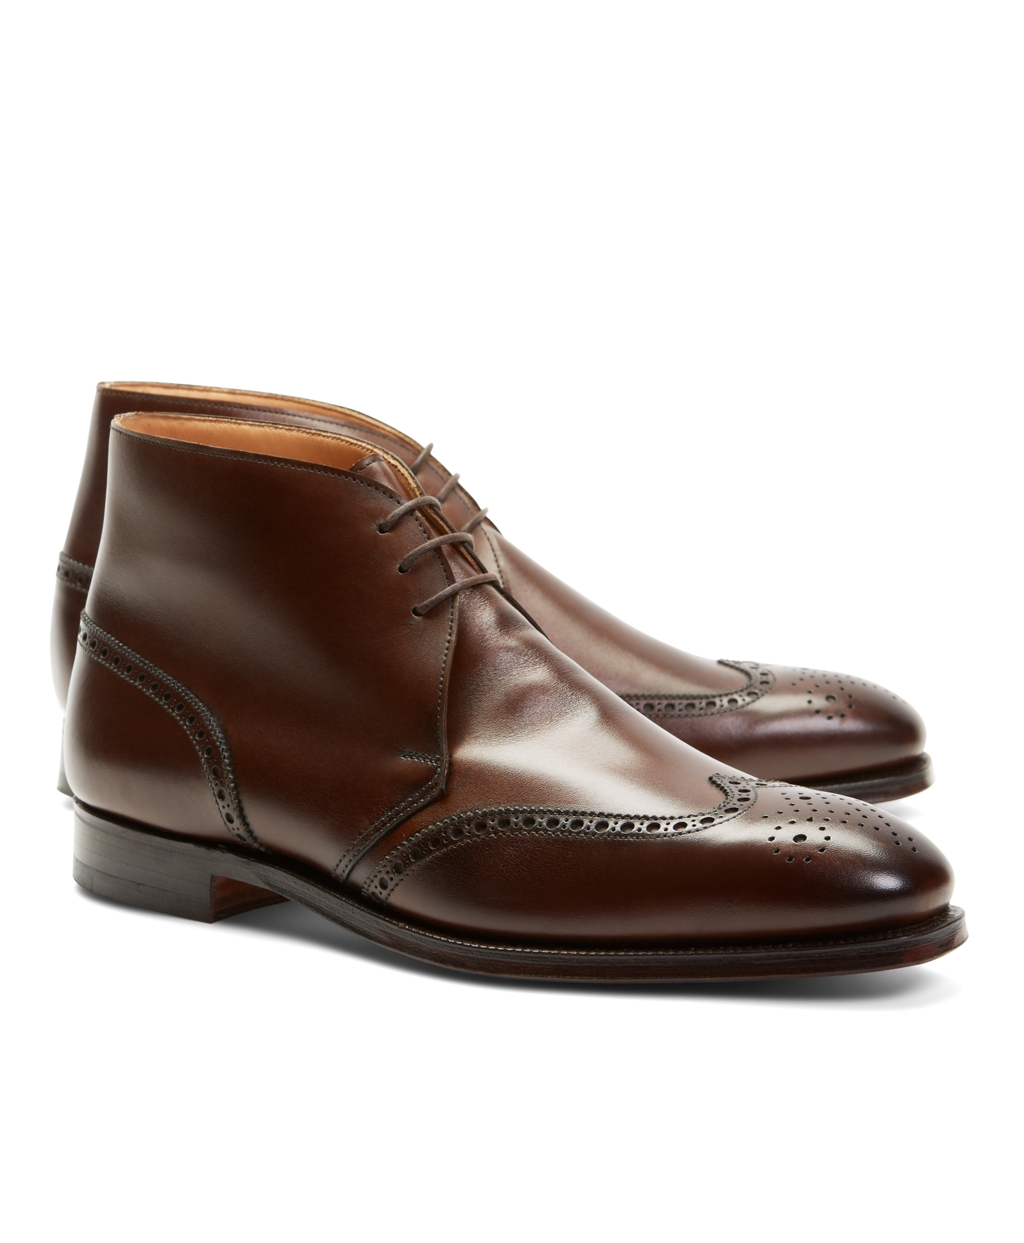 Brooks Brothers Men's Peal & Co. Leather Wingtip Boots